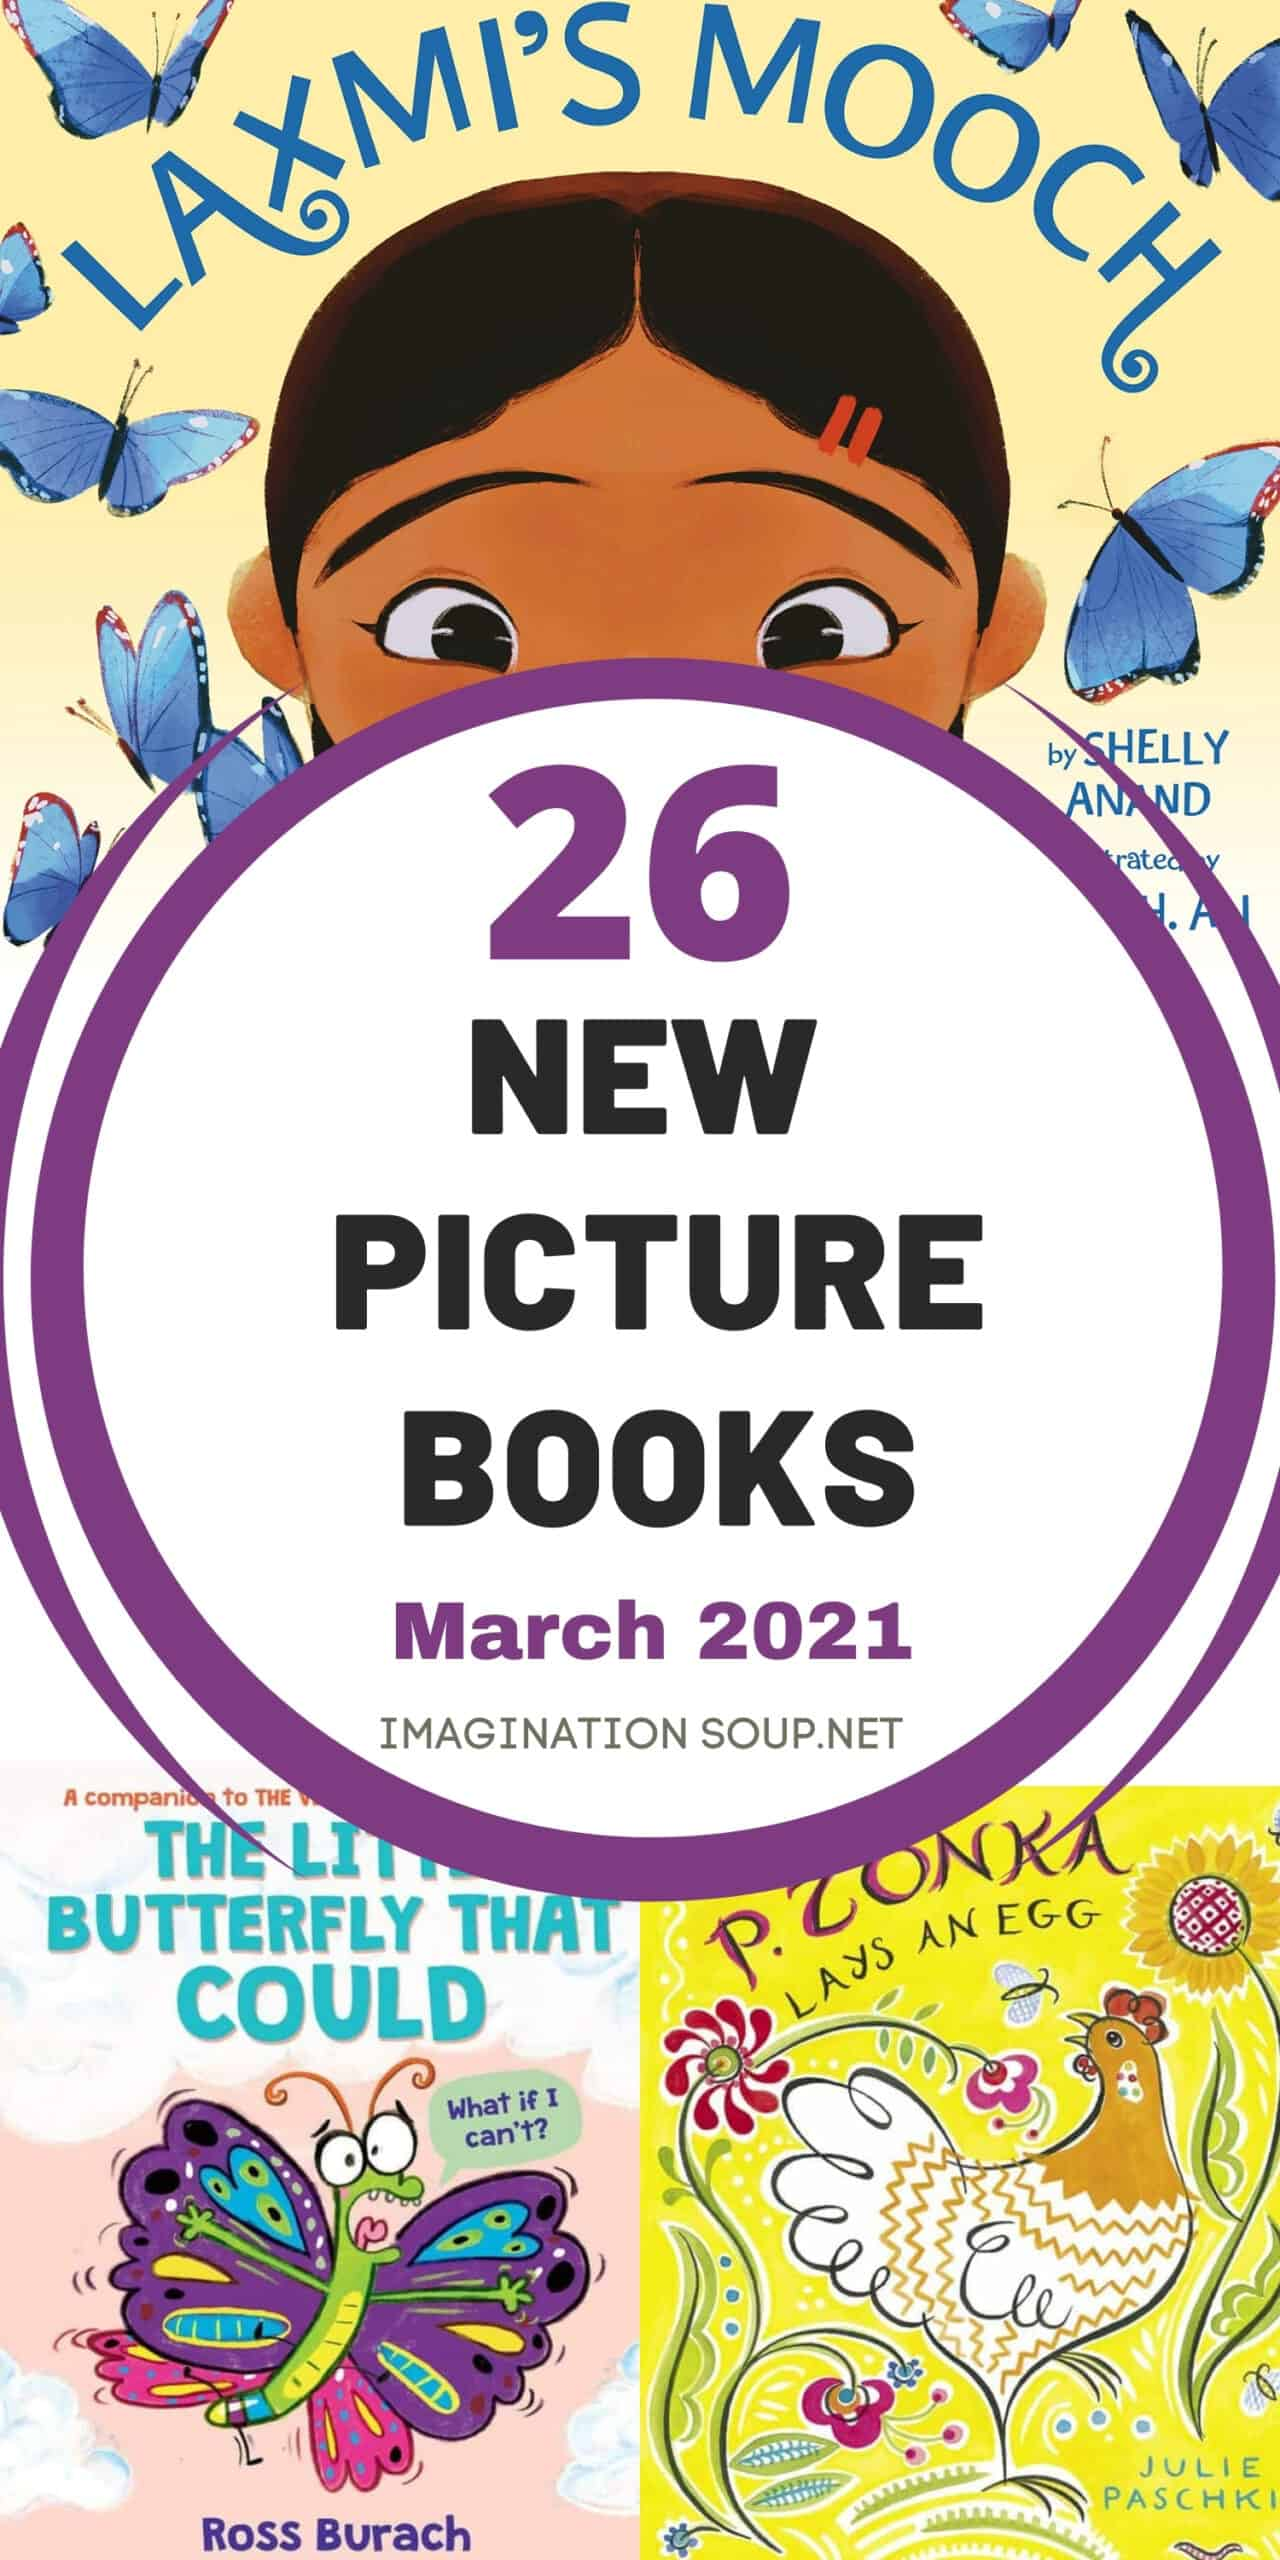 March 2021 Picture Books